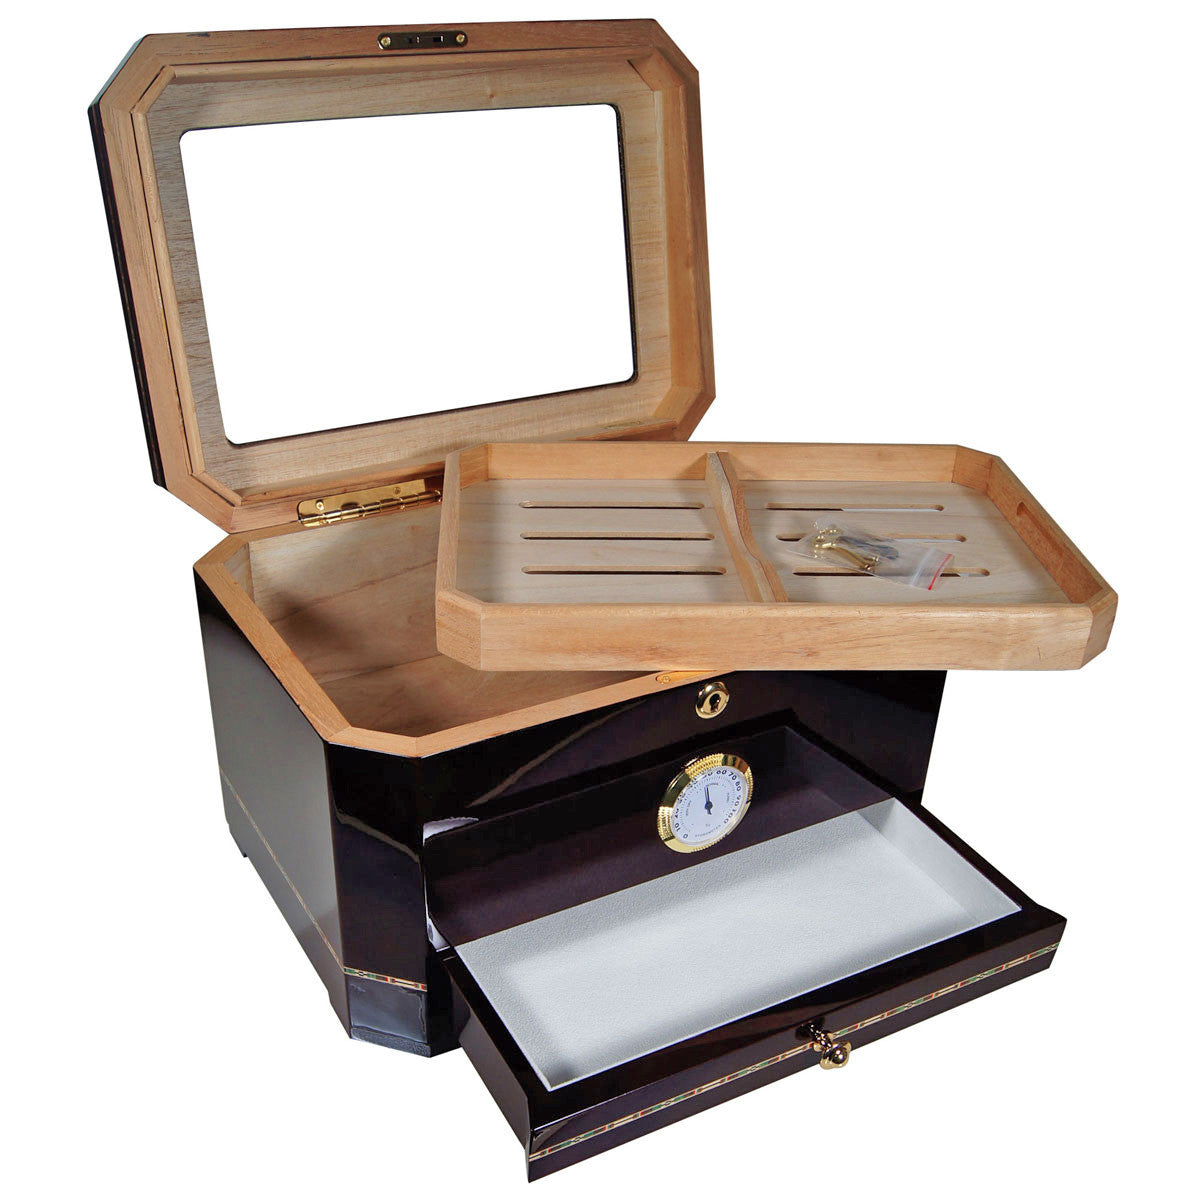 El Mirador Glass Humidor For 100 Cigars Cigar Boulevard